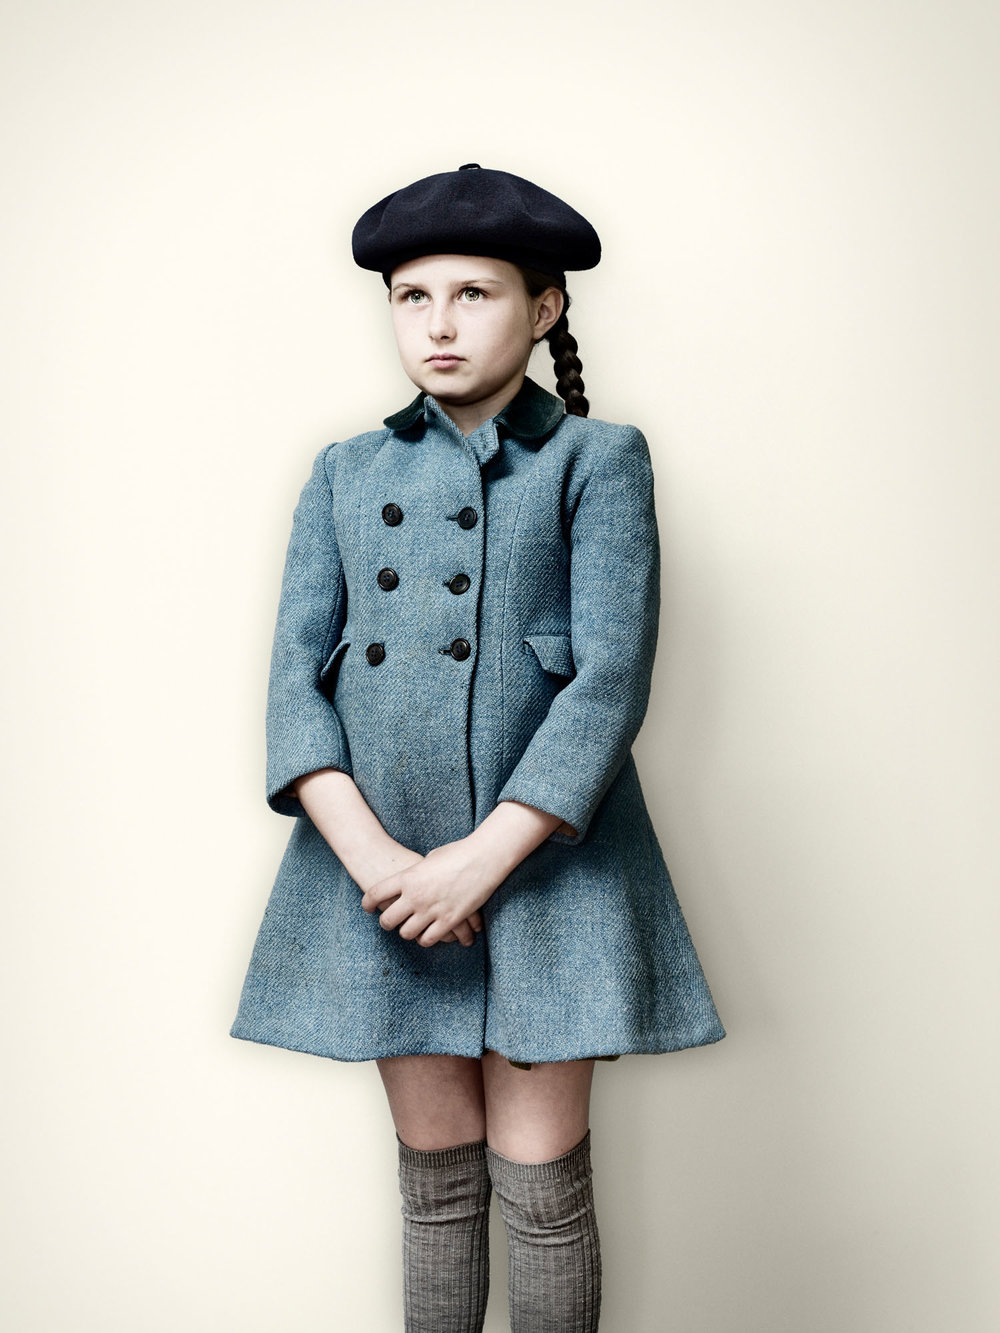 Evacuee Girl in Blue Coat (2008)